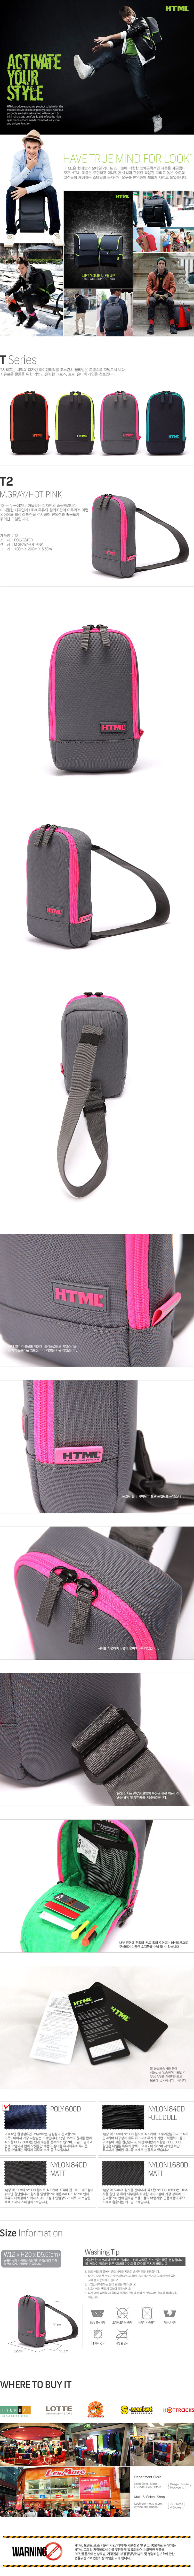 [에이치티엠엘]HTML- T2 Slingbag (M.GRAY/HOT PINK)